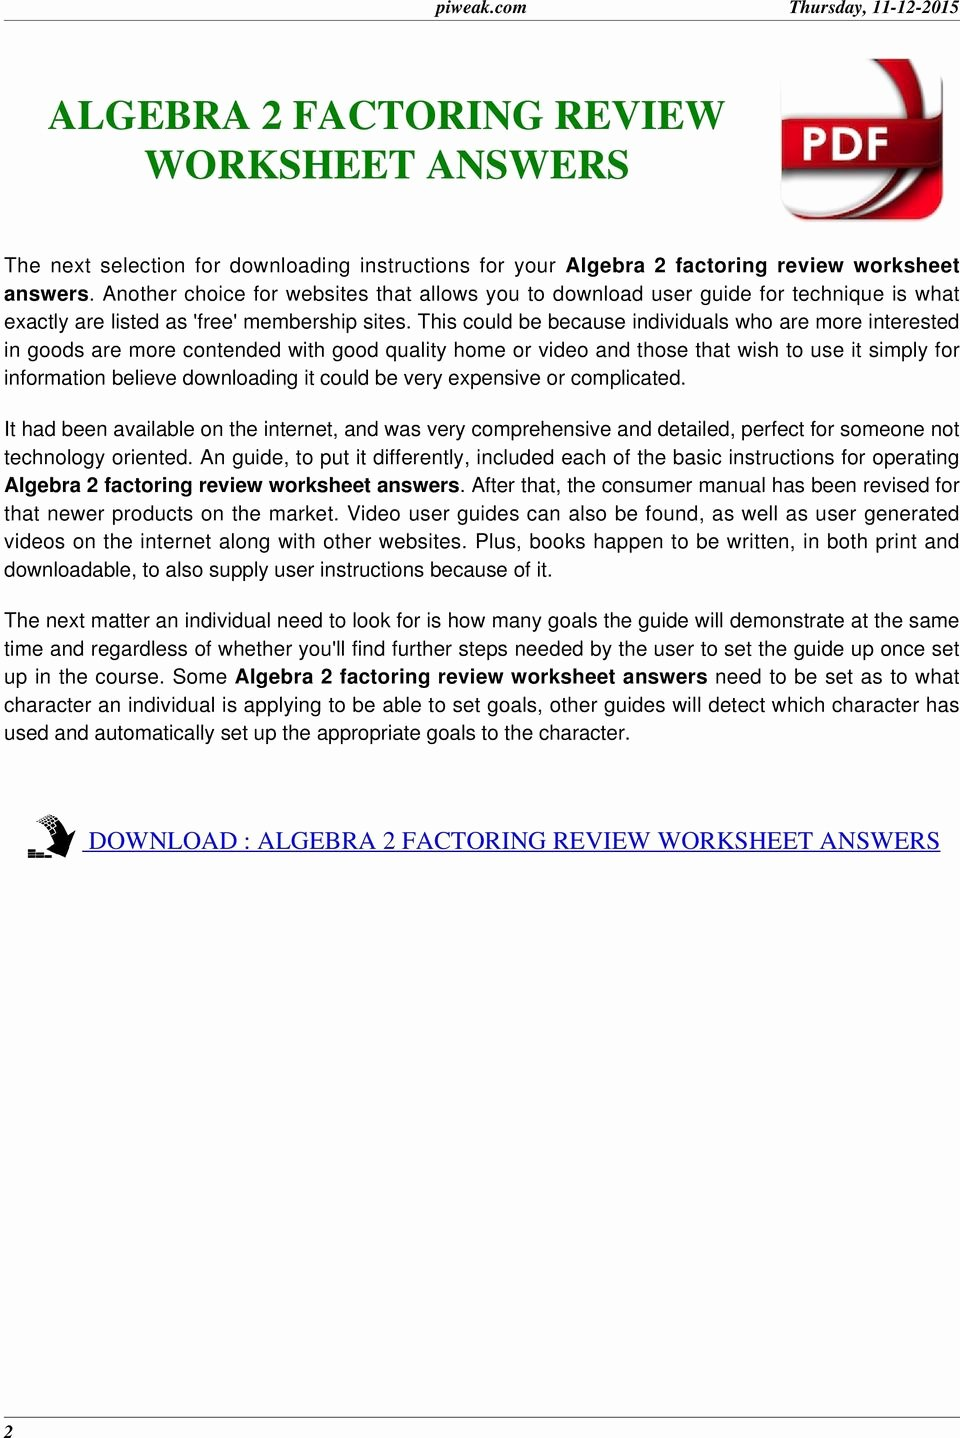 Algebra 2 Worksheet Pdf Awesome Algebra 2 Factoring Worksheet with Answers